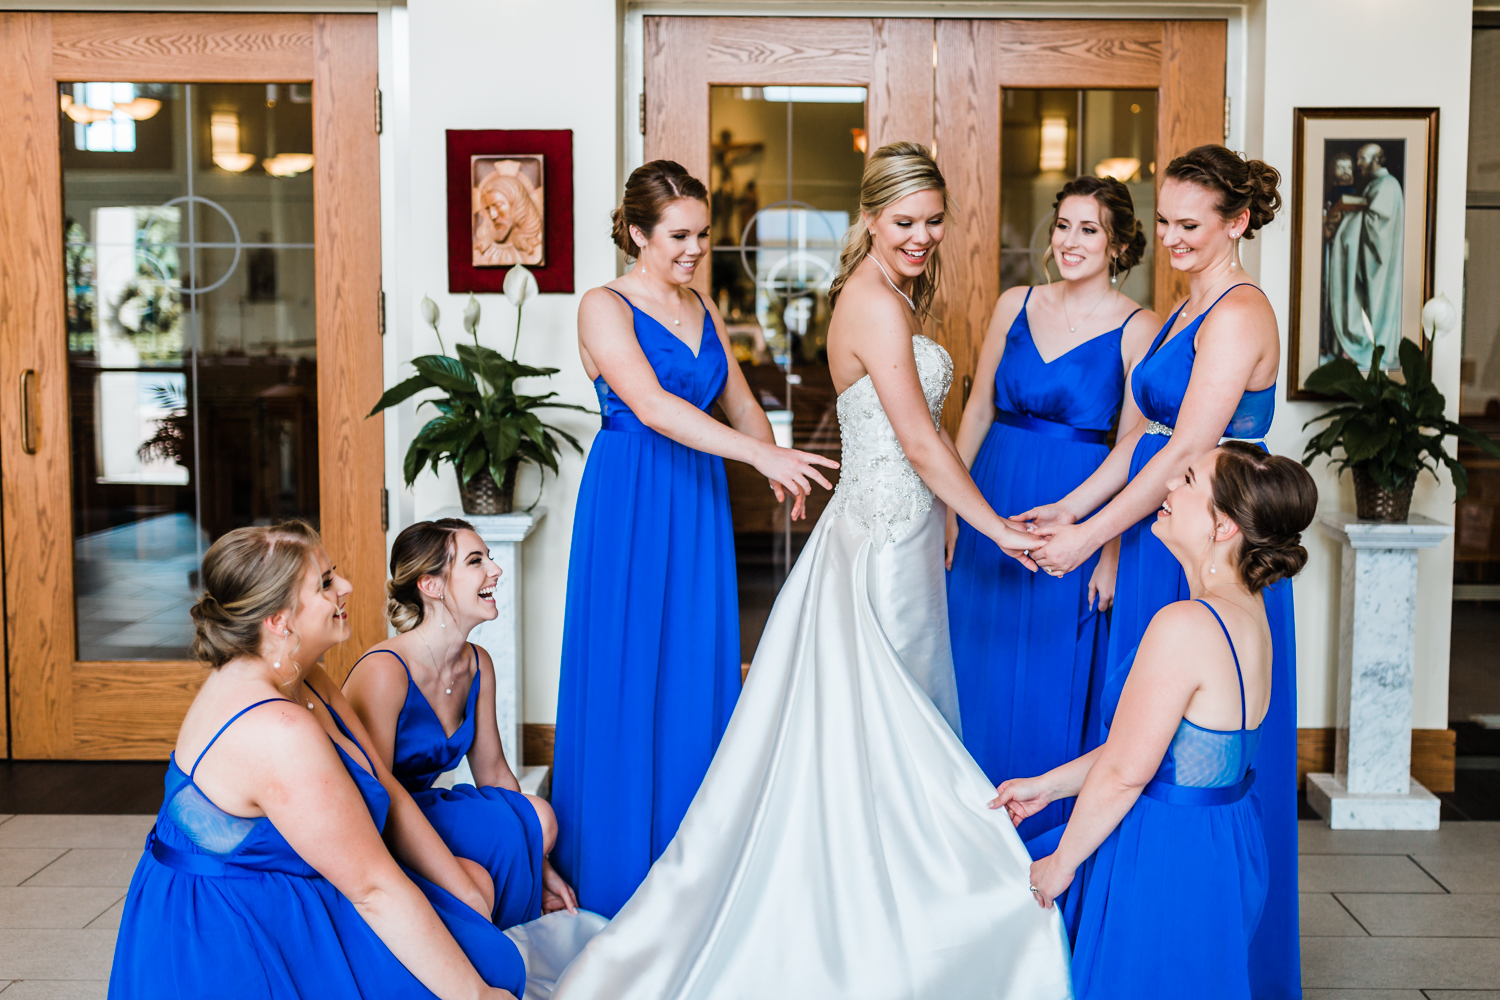 bride and her bridesmaids getting ready at St. Johns Catholic church in Westminster, MD